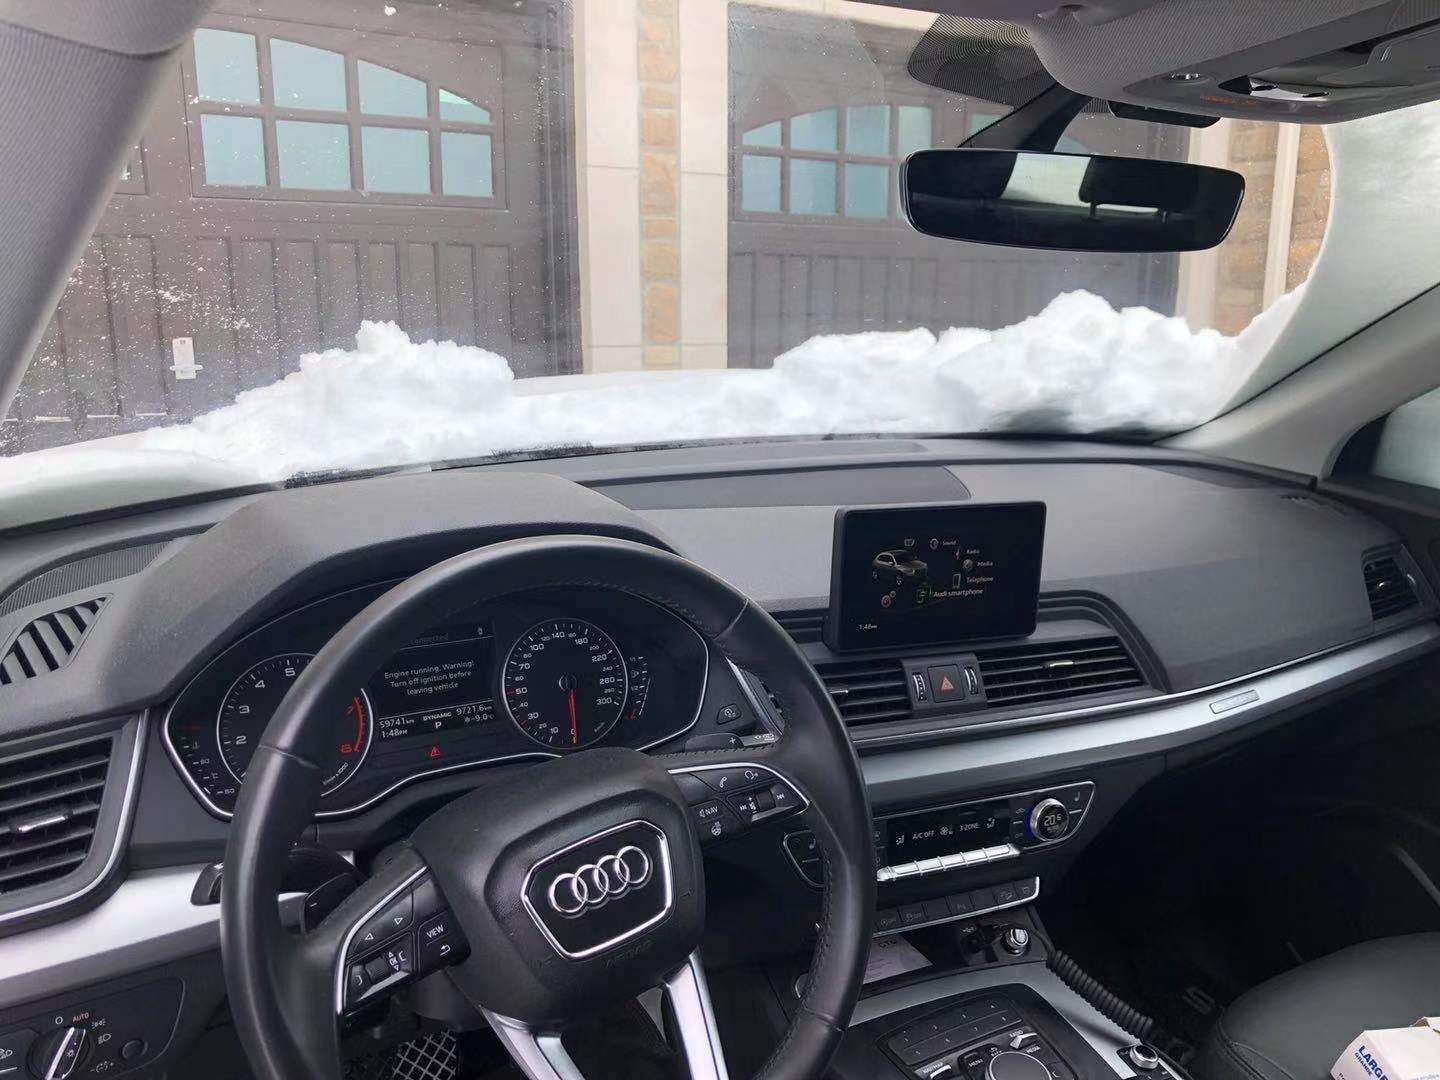 2018 Audi Q5 null - INFOCAR - Toronto's Most Comprehensive New and Used Auto Trading Platform